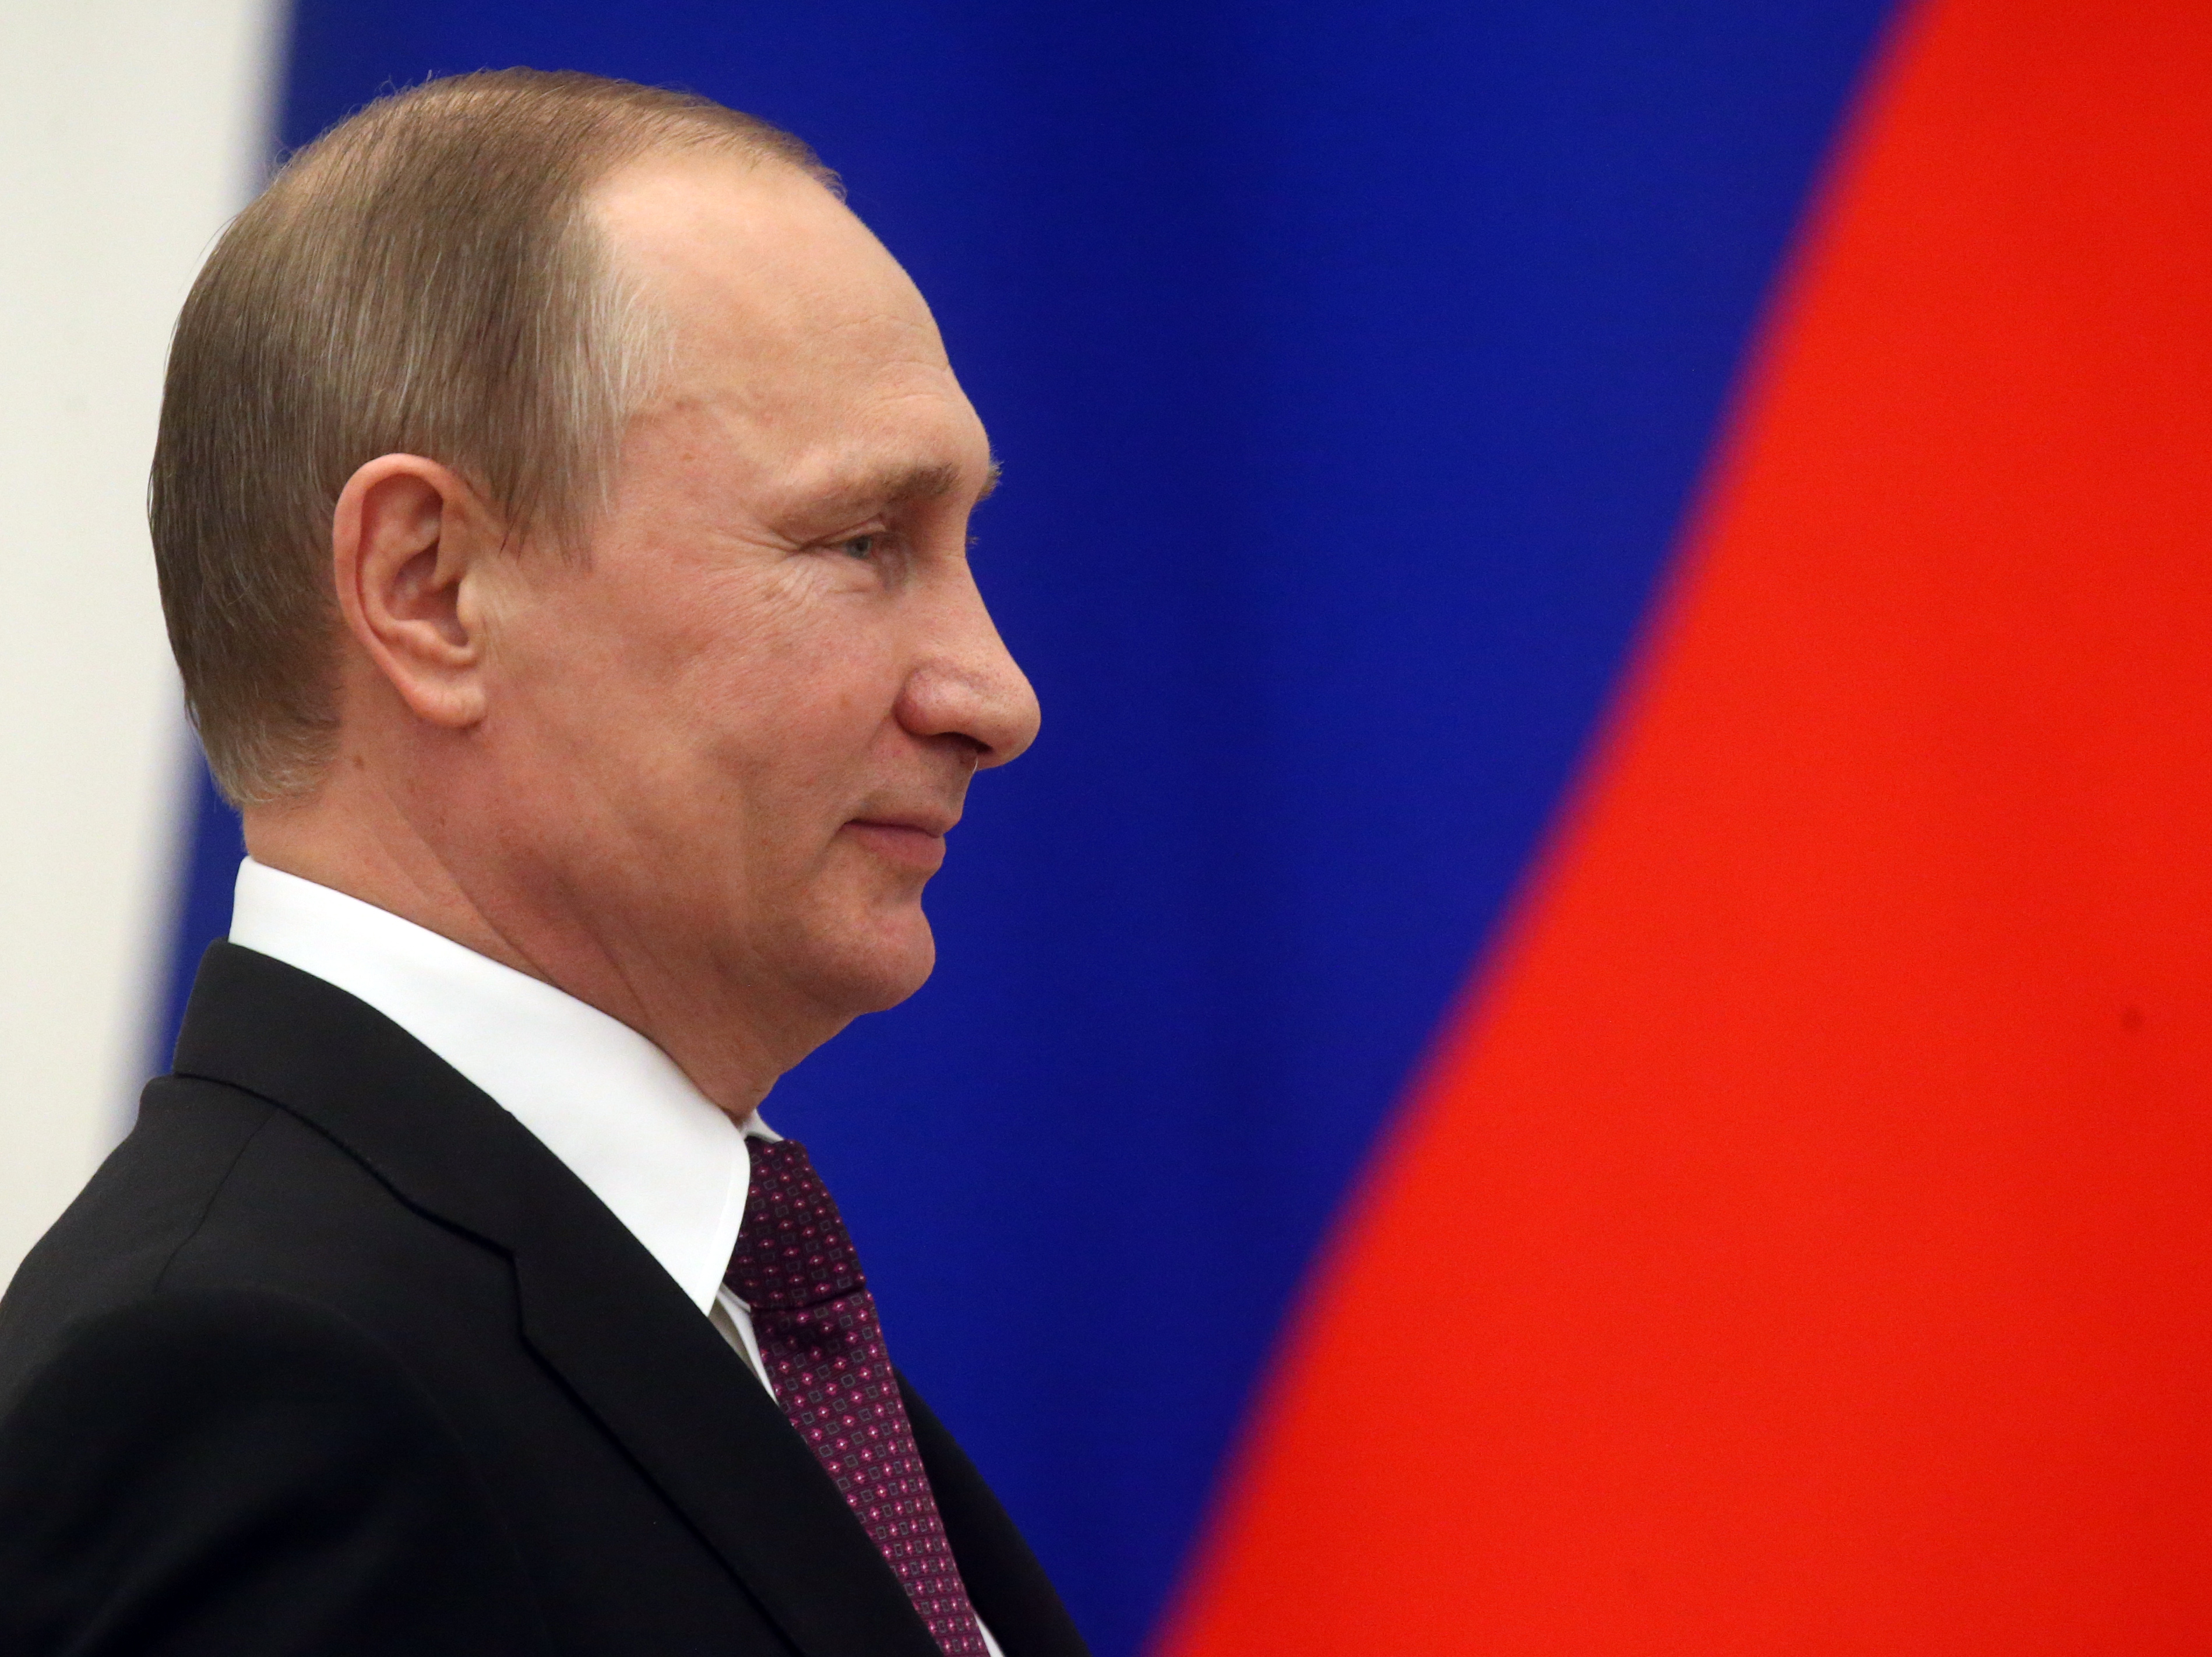 Russian President Vladimir Putin at an awarding ceremony at the Kremlin in Moscow on March 10, 2016.